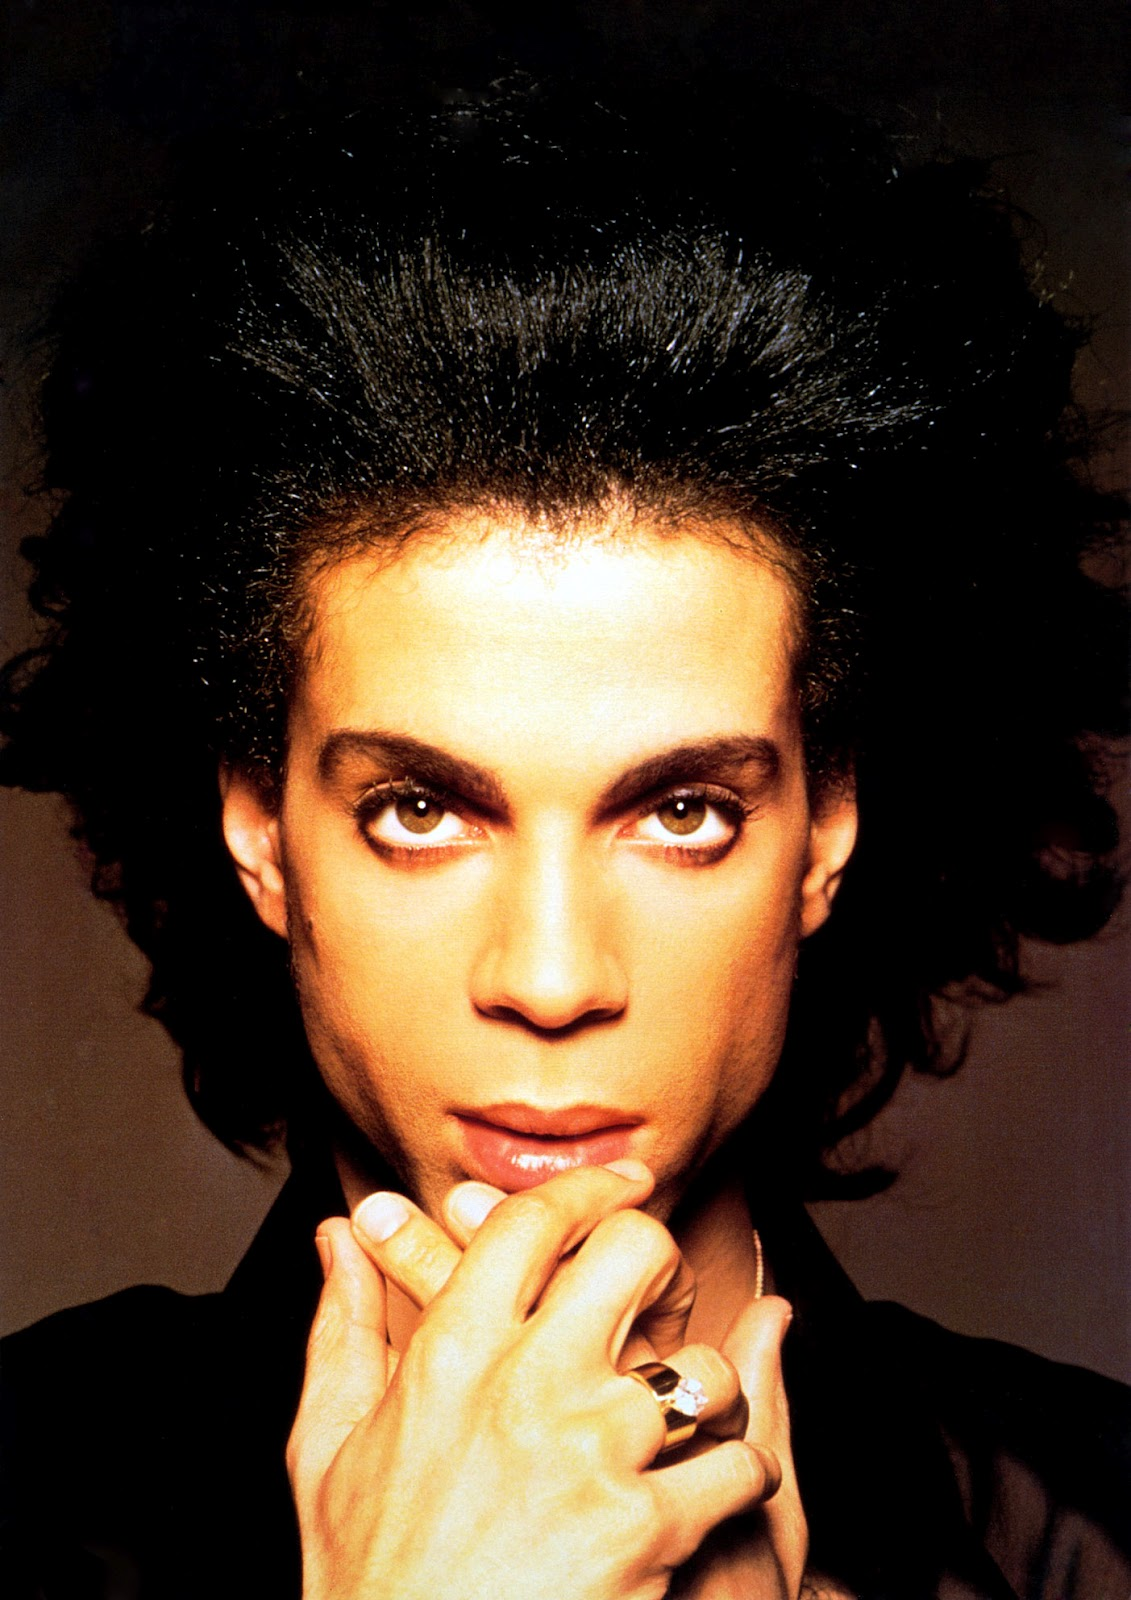 prince hair style prince hairstyles hair styles collection 4925